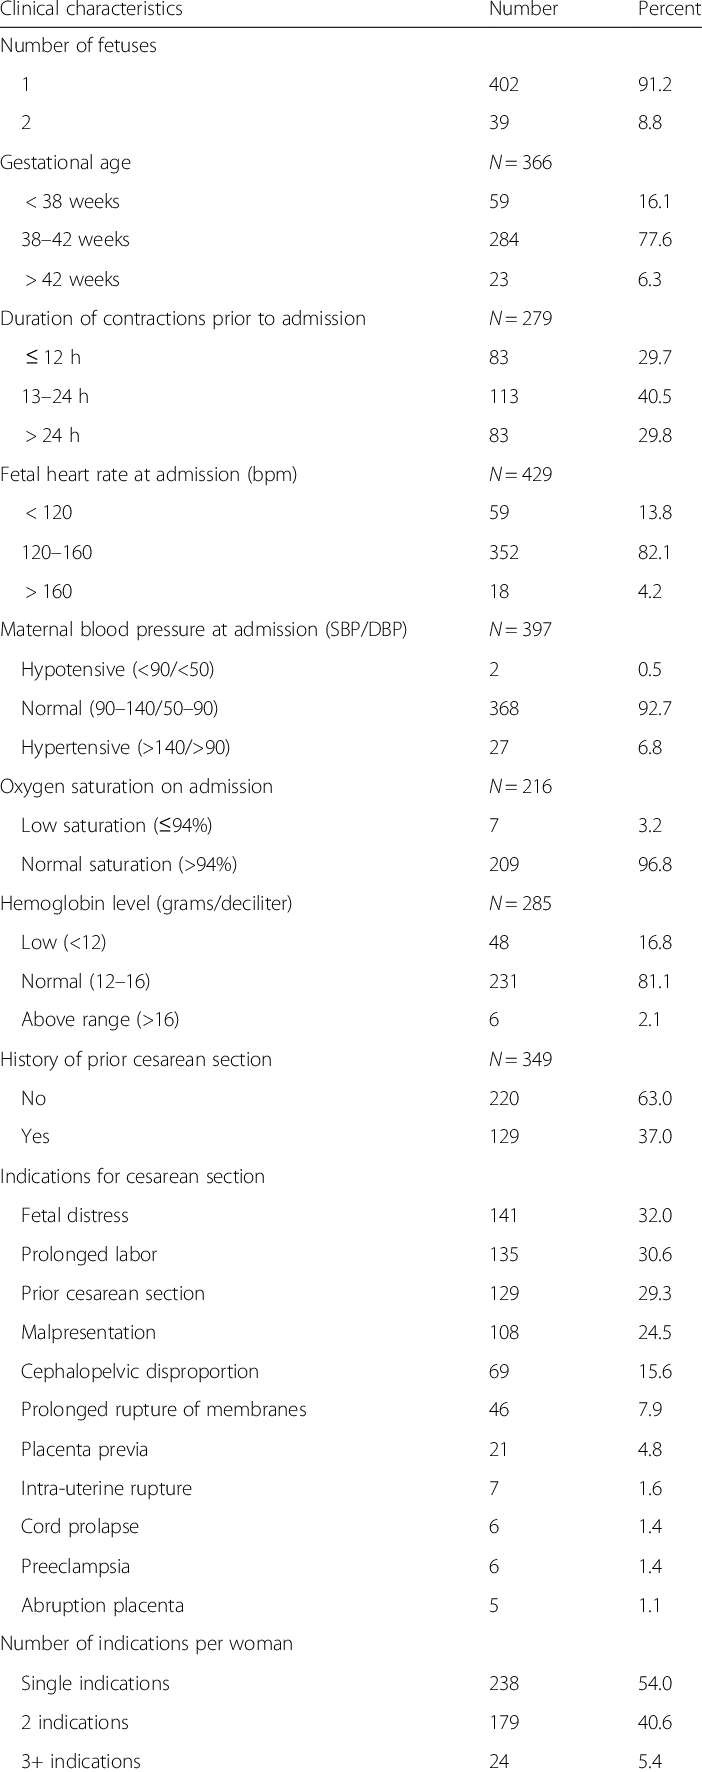 Clinical characteristics of mothers and neonatal outcomes